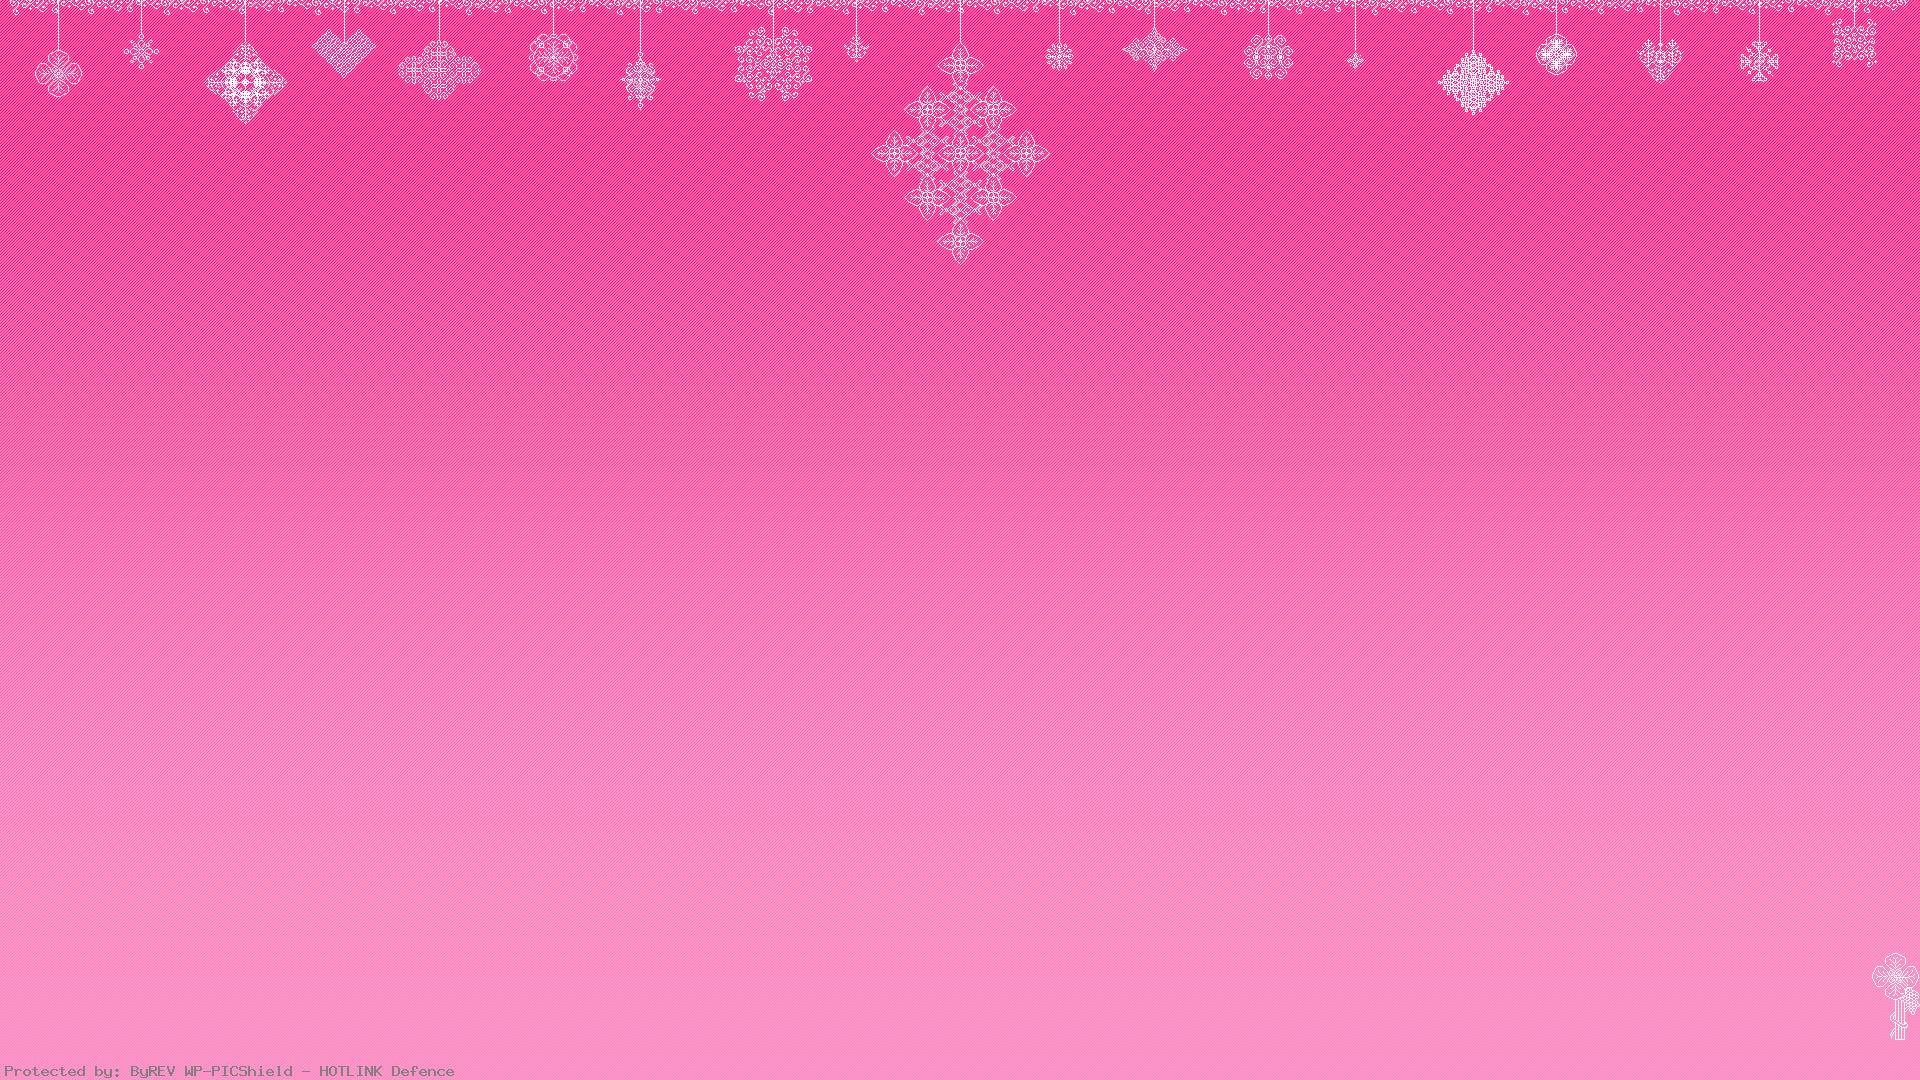 Pink-Iphone-1920x1080px-MB-ratio-for-Gt-Pink-